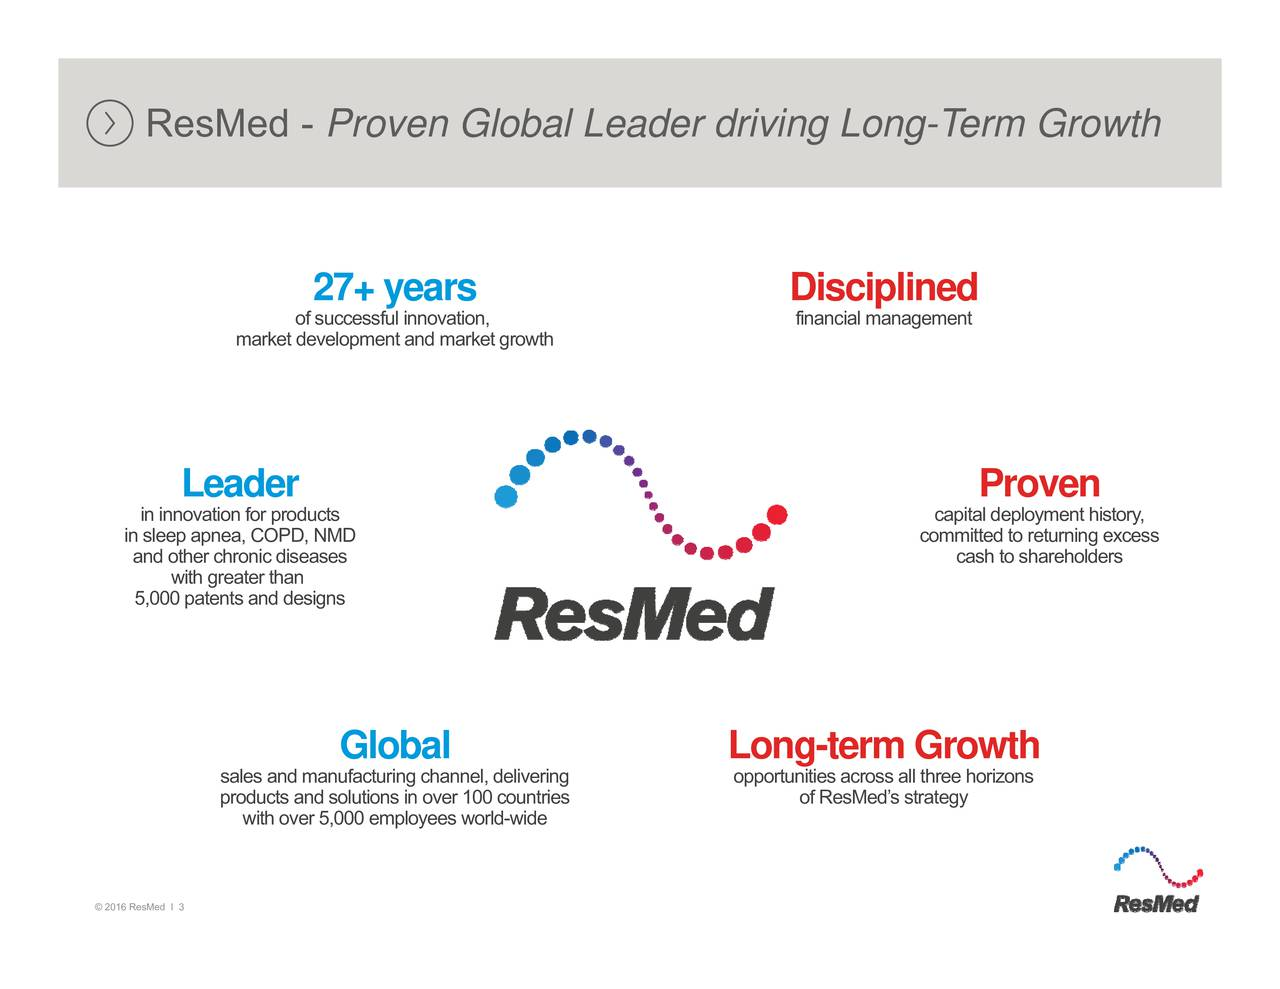 cash to shareholders ccommitted to returning excess financial management of ResMeds strategy Disciplined Long-term Growthacross all three horizons oyees world-wide Global Proven Global Leader driving Long-Term Growth 27of successful innovation, with over 5,000 empl market development and market growth saproducts and solutions in over 100 countries Leader with greater than ResMed - in innovation for products in sleep apnea, COPD, NMDsesgns 2016 ResMed I 3